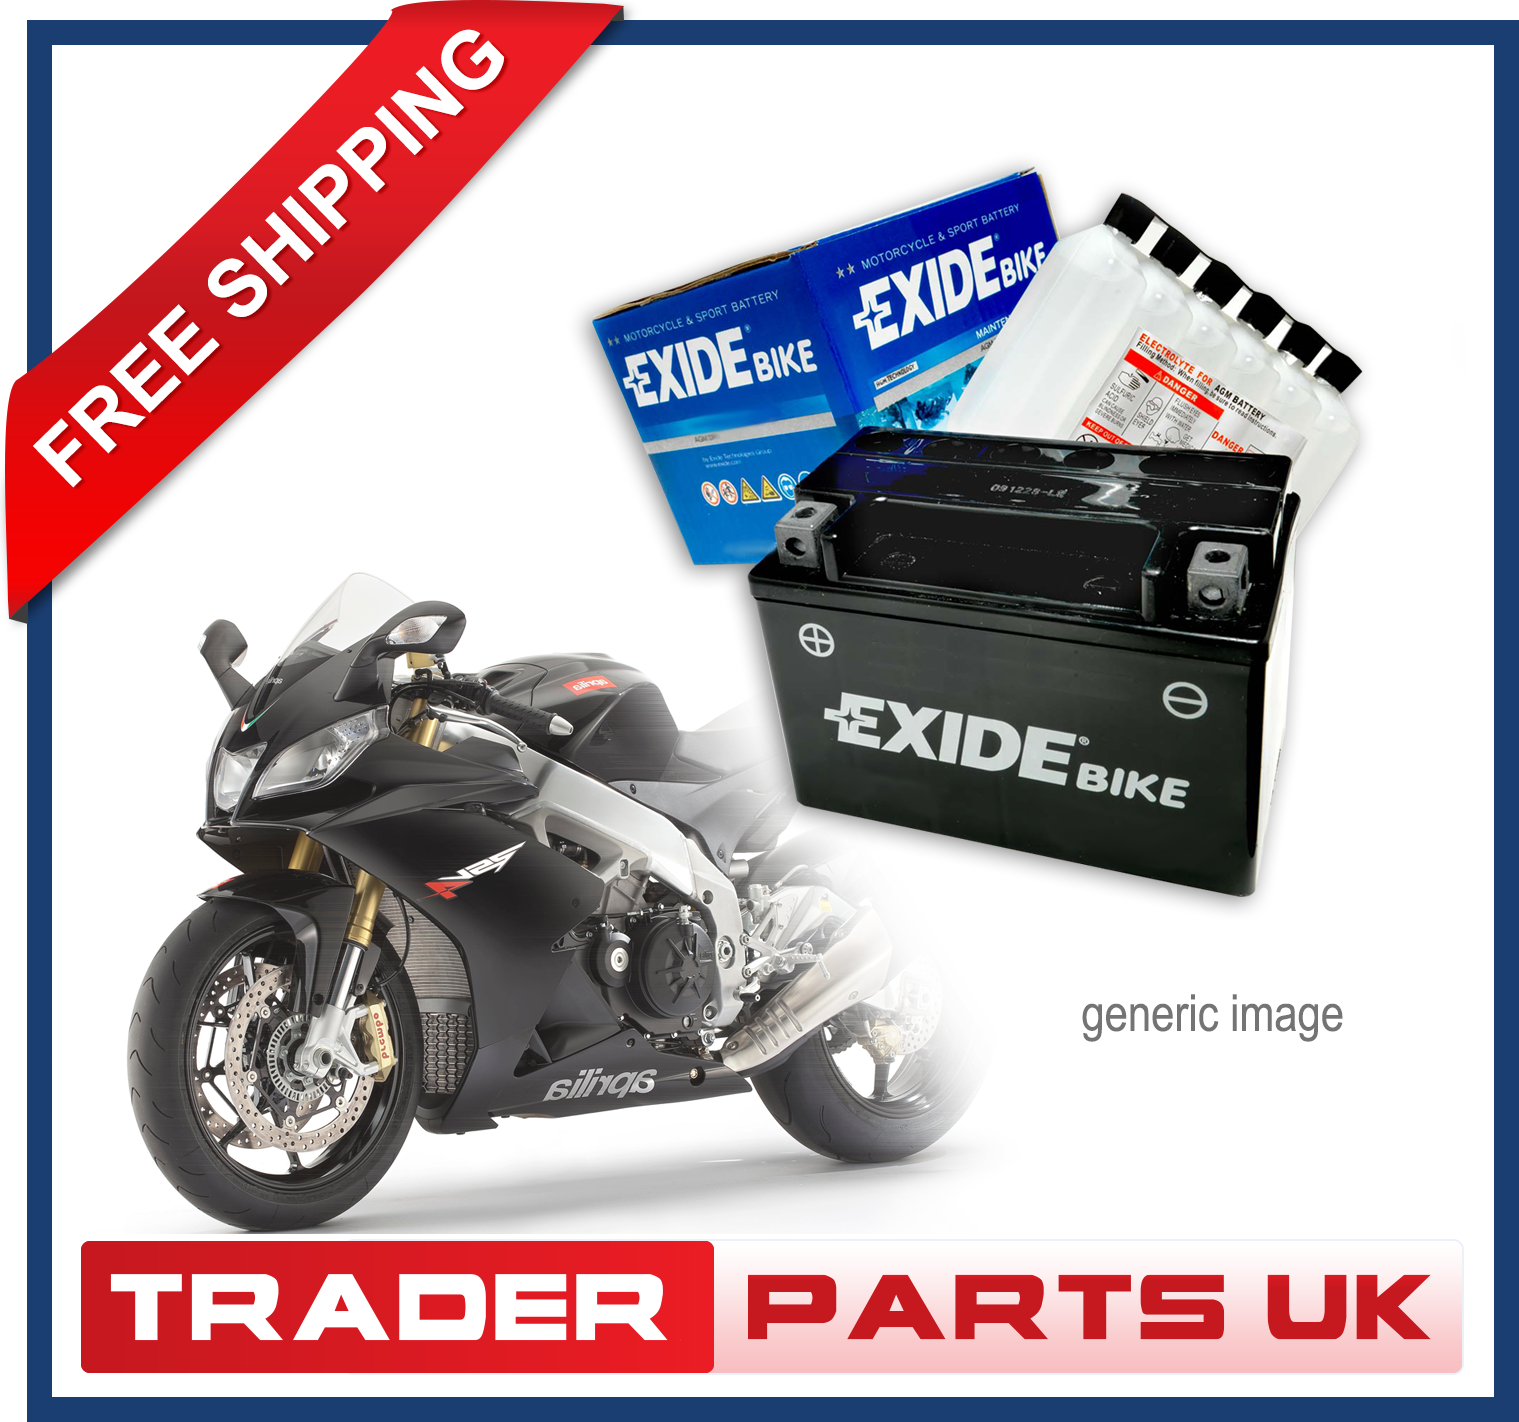 HONDA 700 MUV 700 Big Red 2008-2011 Exide ATV&Utility Battery YTX14-BS